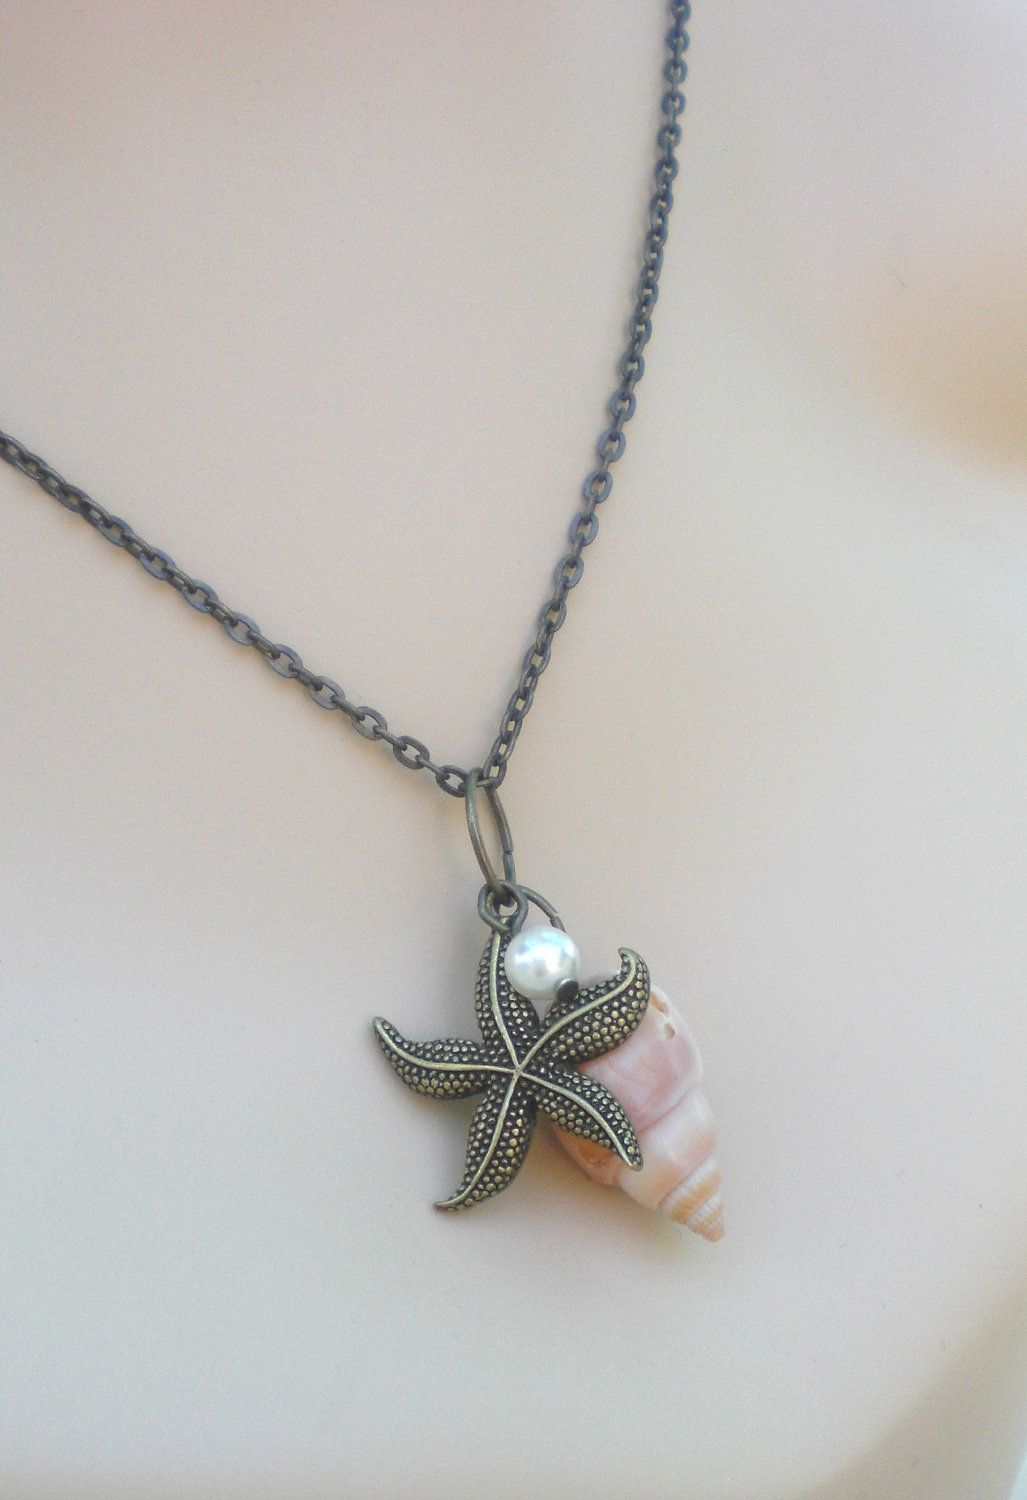 Antiqued Starfish and Shell with Swarvoski Pearl - Seaside Charm Drop Necklace. $16.75, via Etsy.